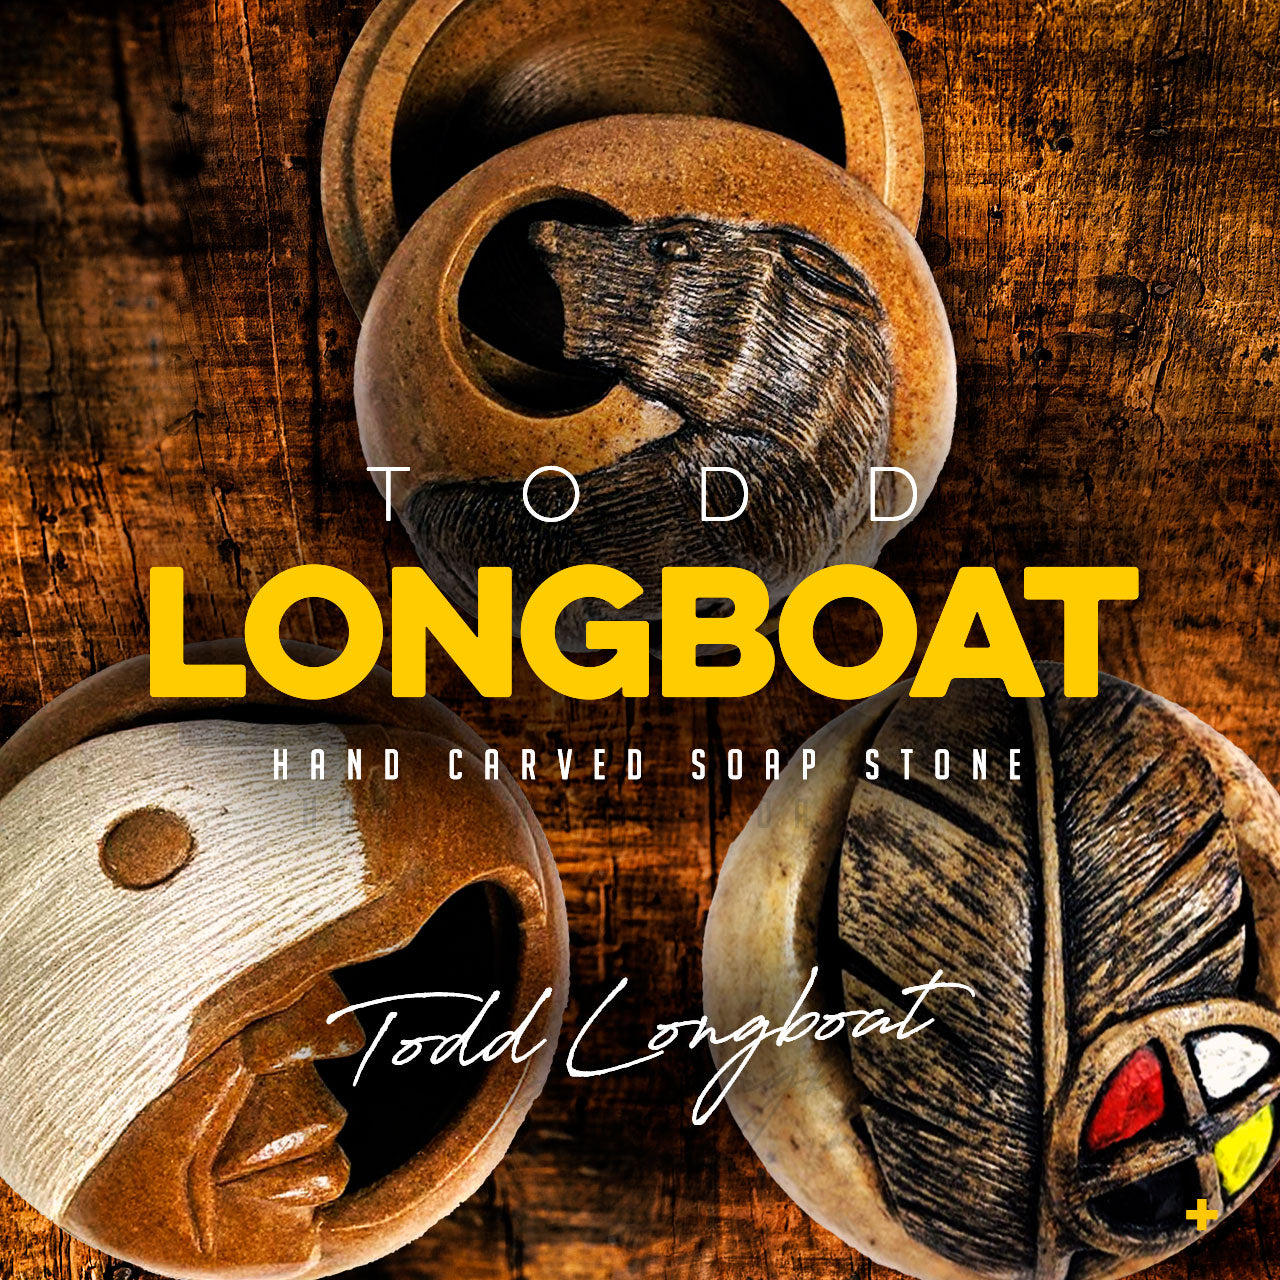 Todd Longboat - Hand Carved Soap Stone